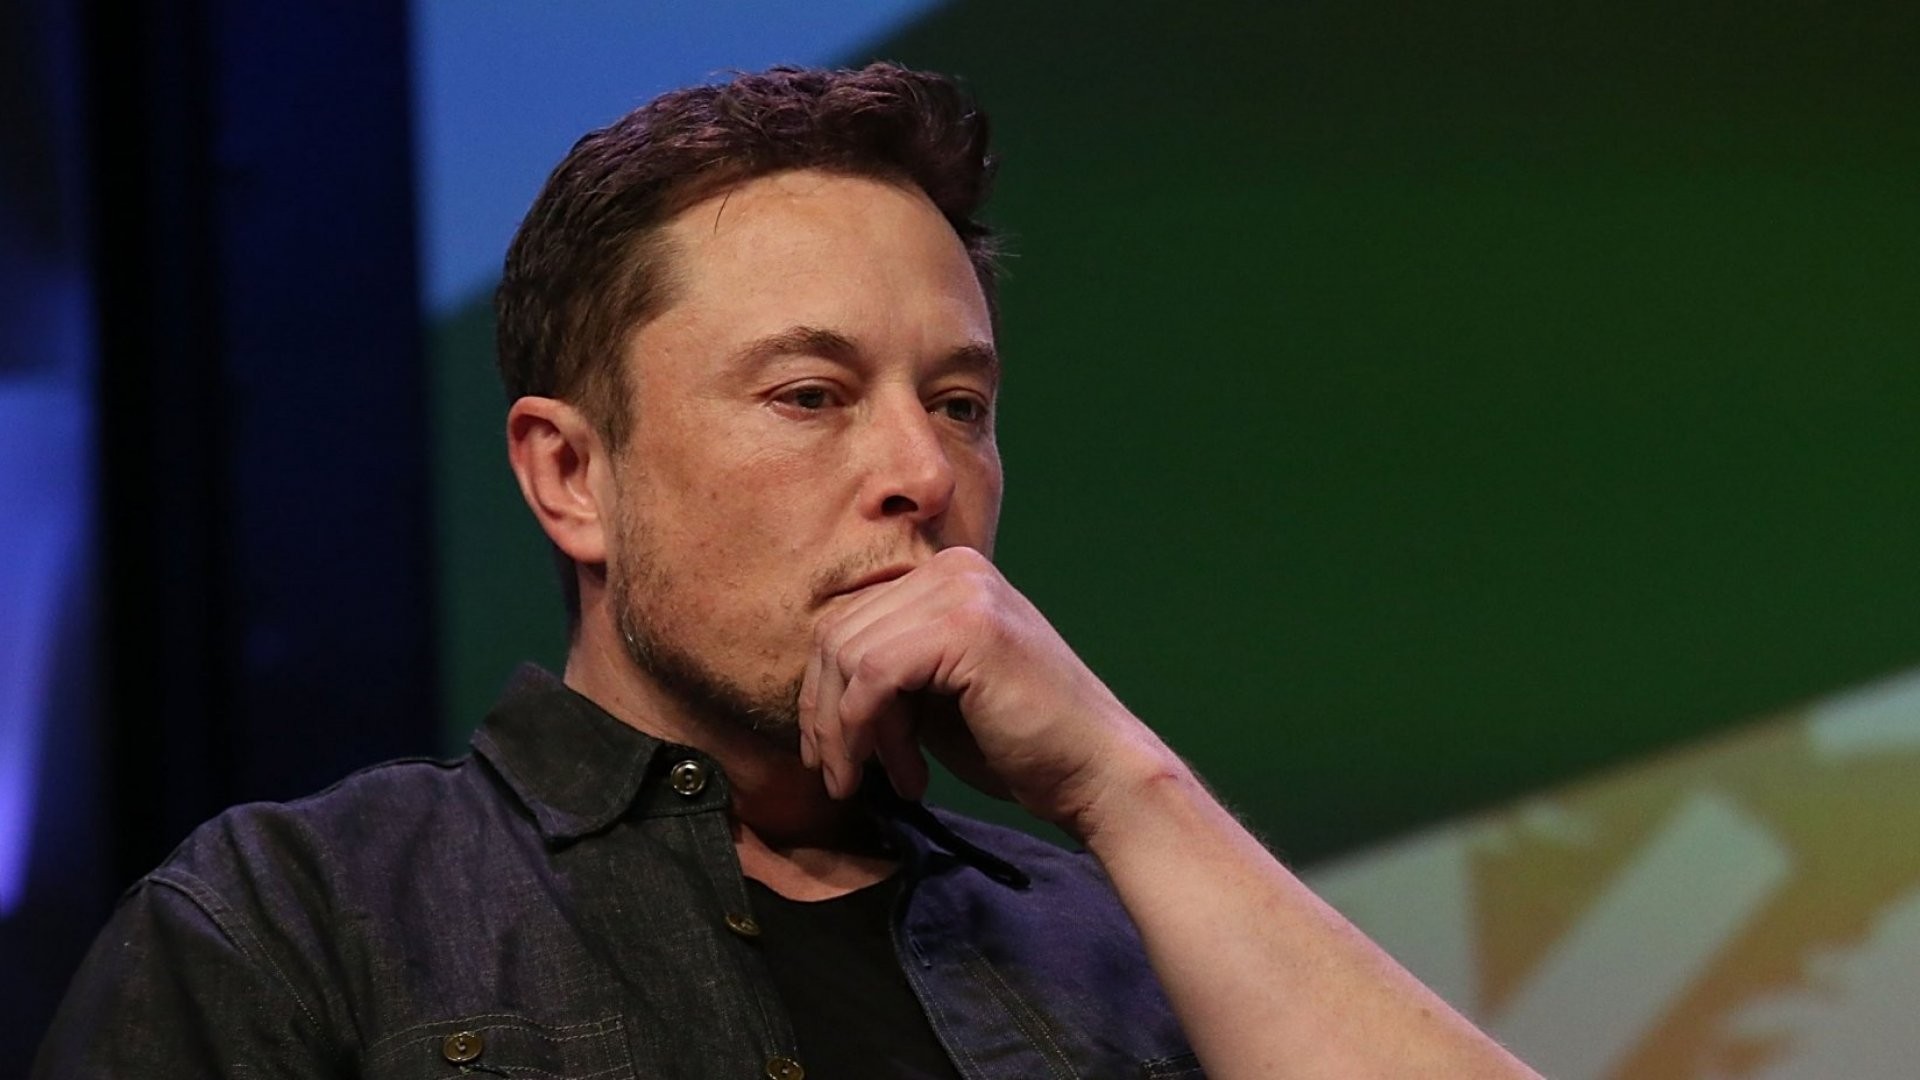 Elon Musk's Harmful Twitter Attack Is a Major Lesson in Emotional Intelligence